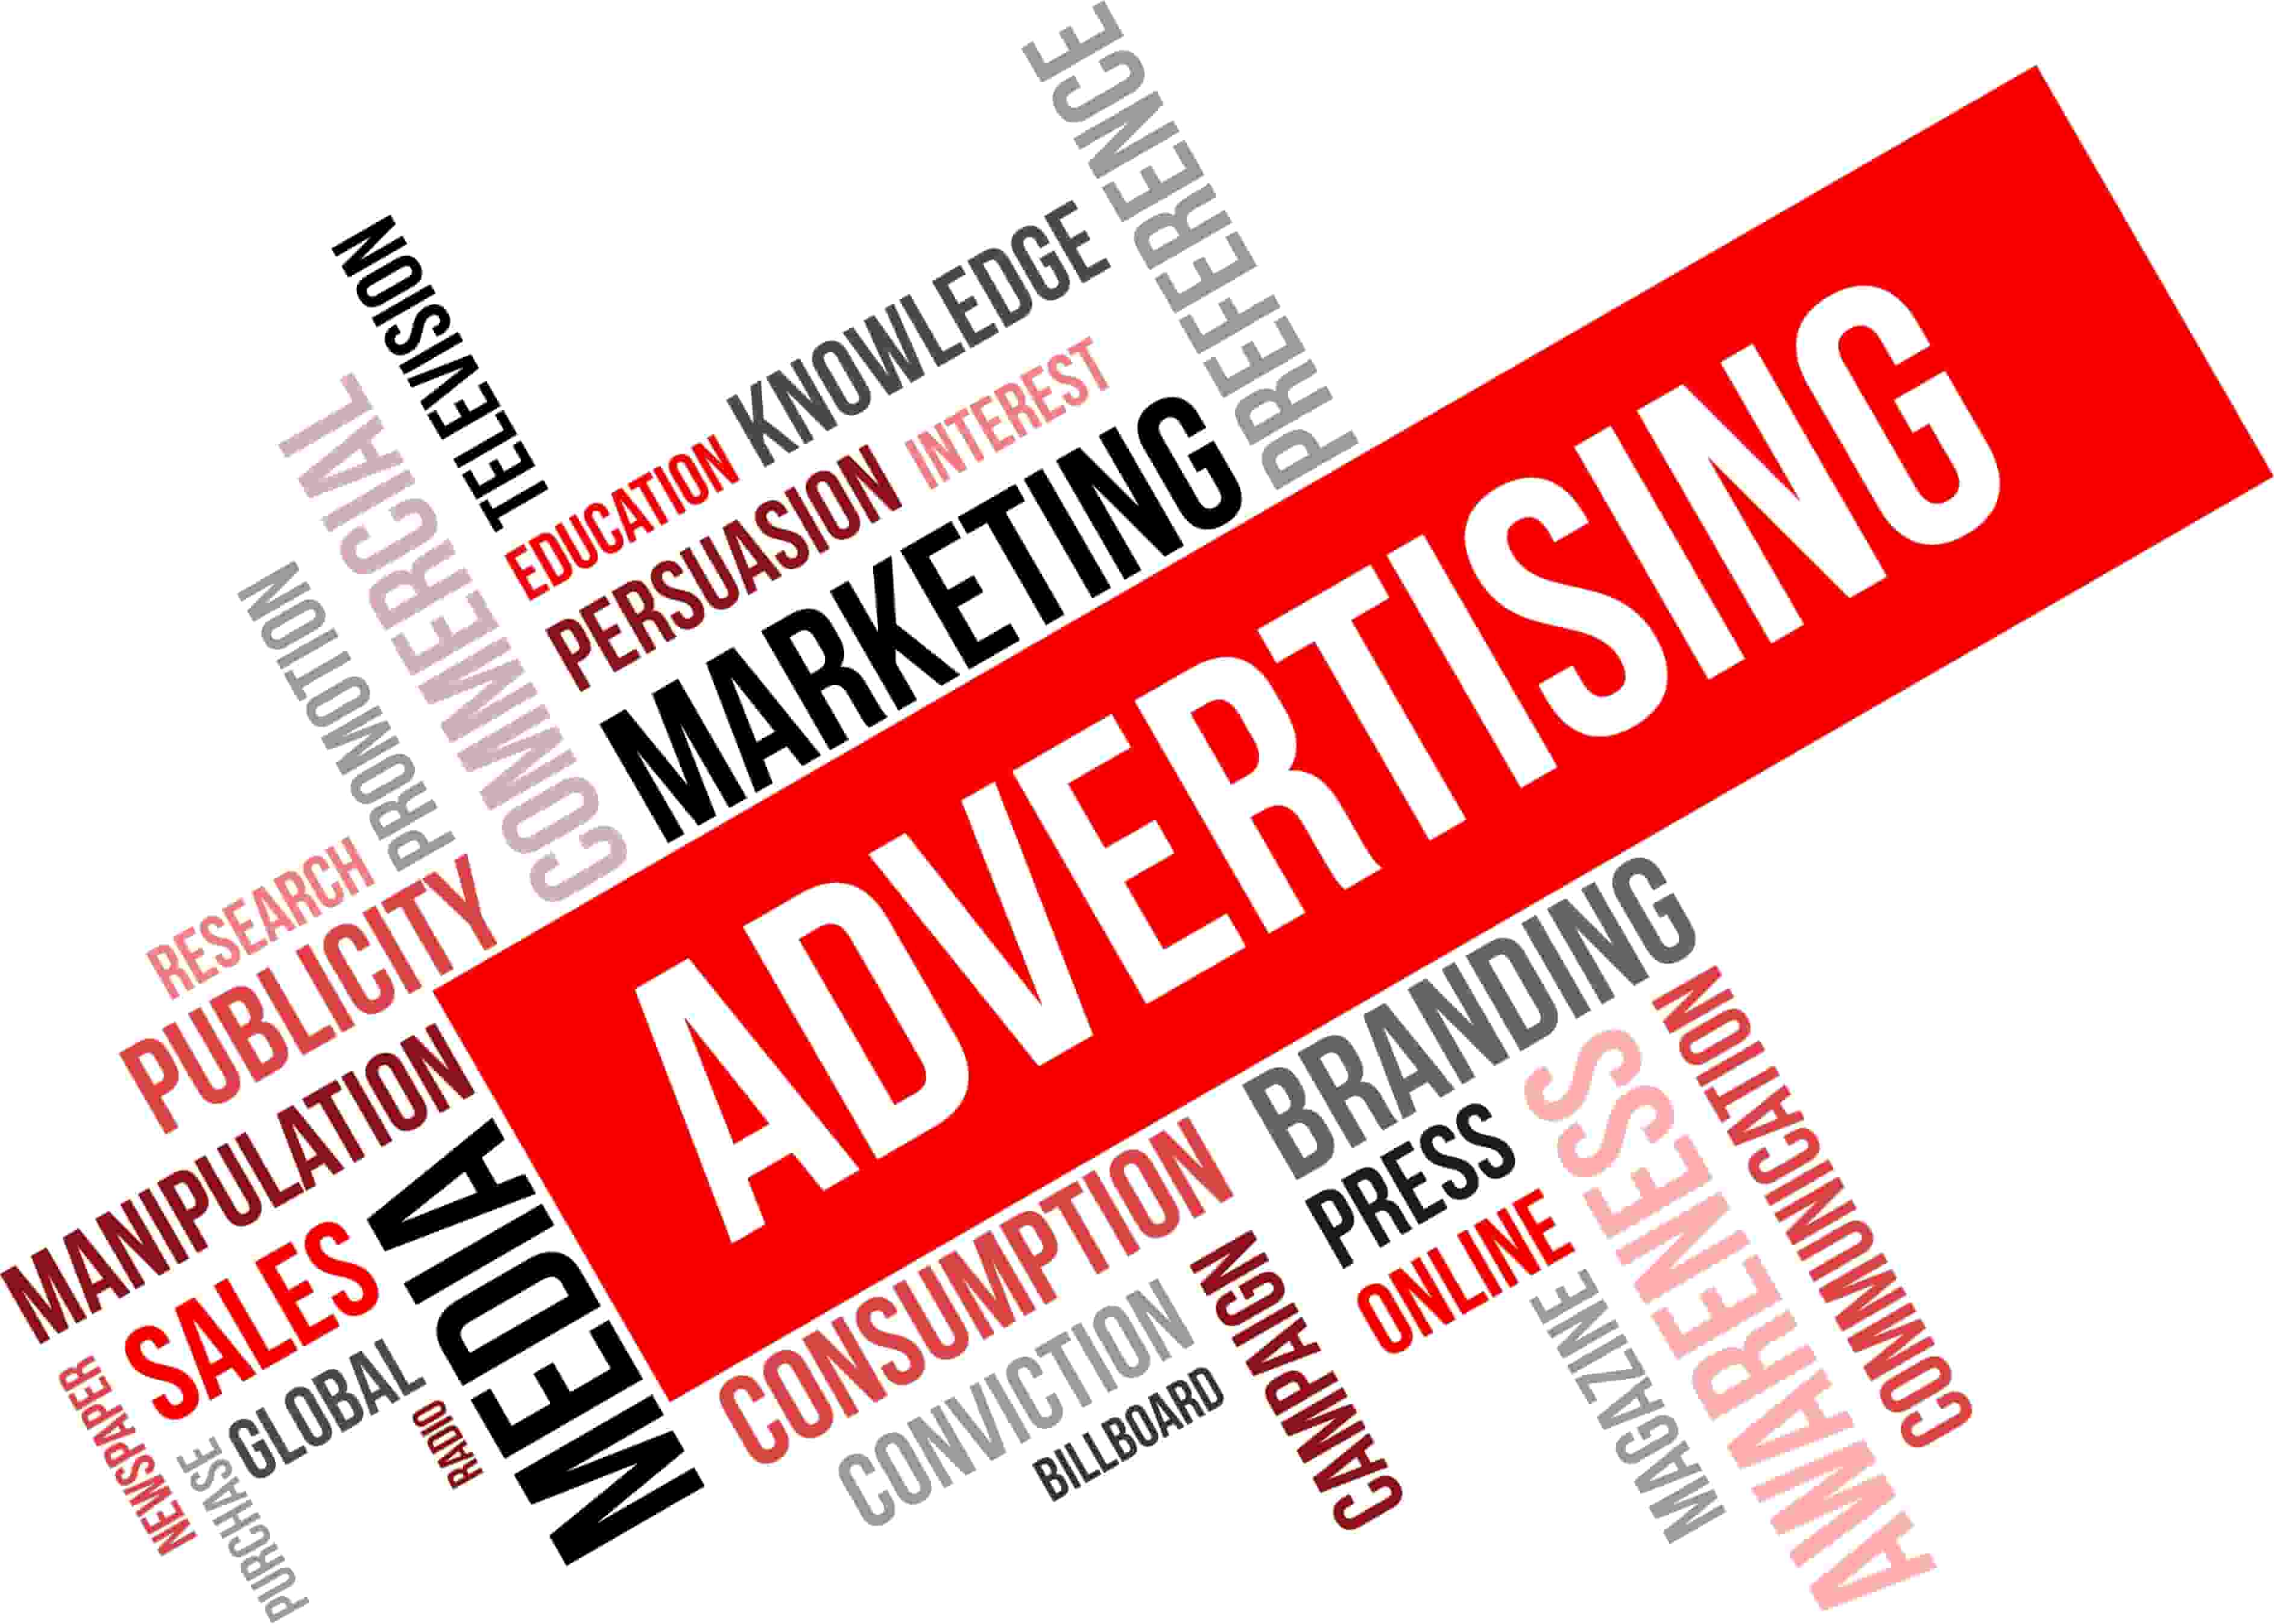 Do You Want to Make the Best Marketing Advertising Ever?